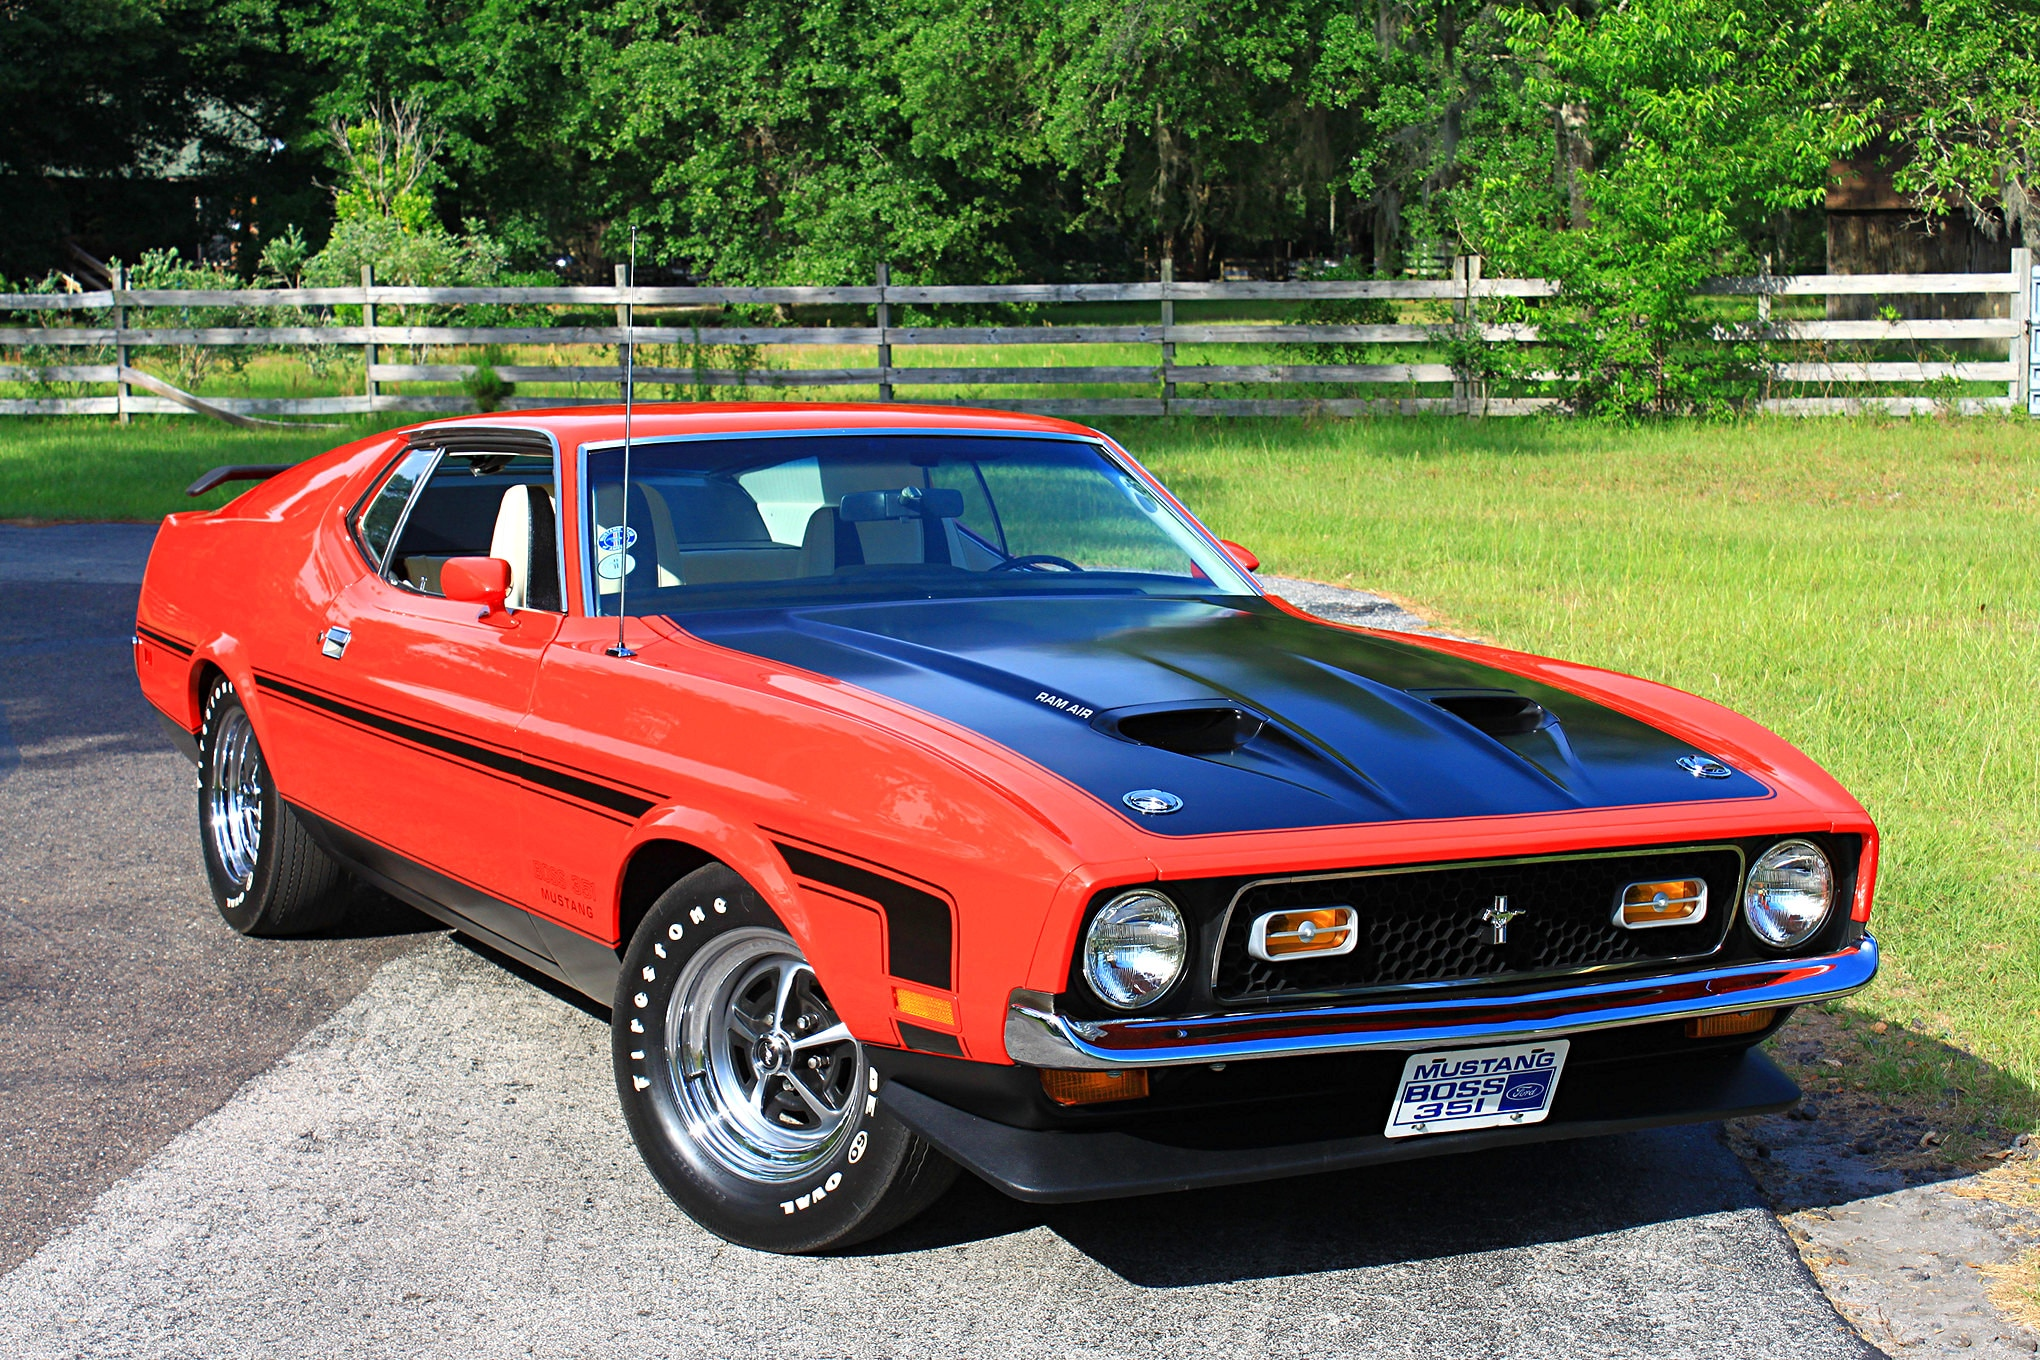 02 1971 Ford Mustang Boss 351 Red Front Three Quarter